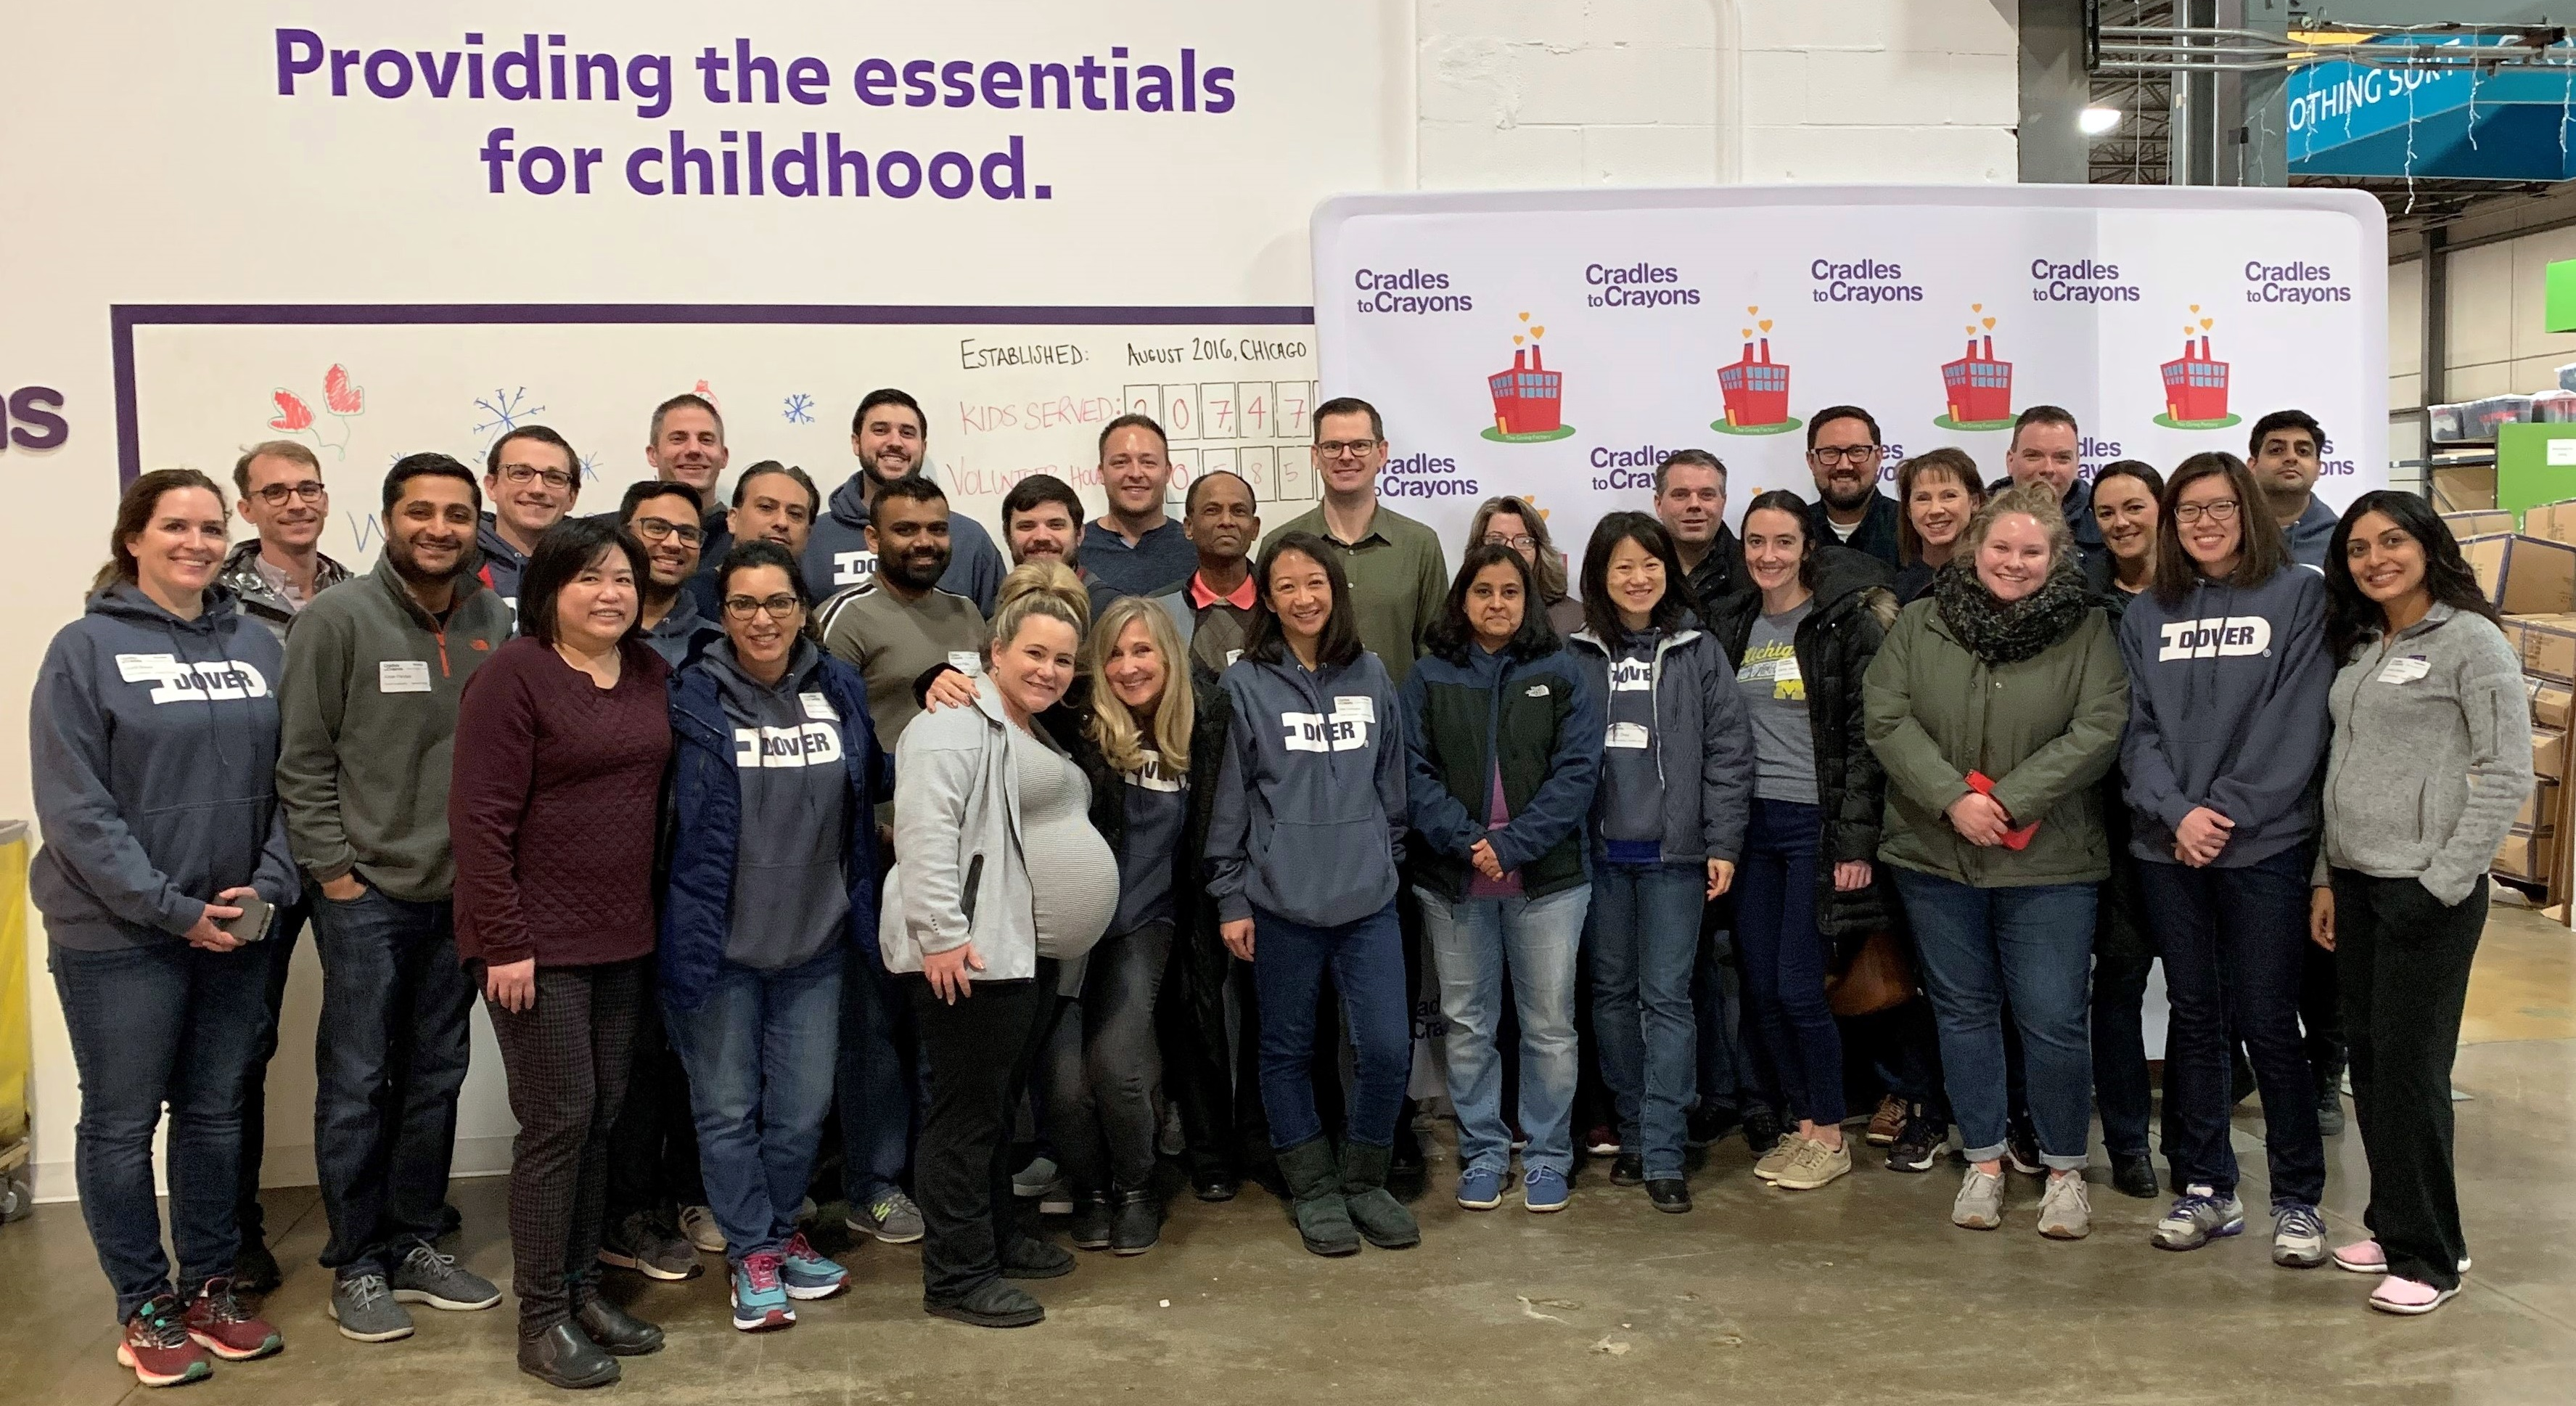 Dover Team Members Volunteer at Cradles to Crayons